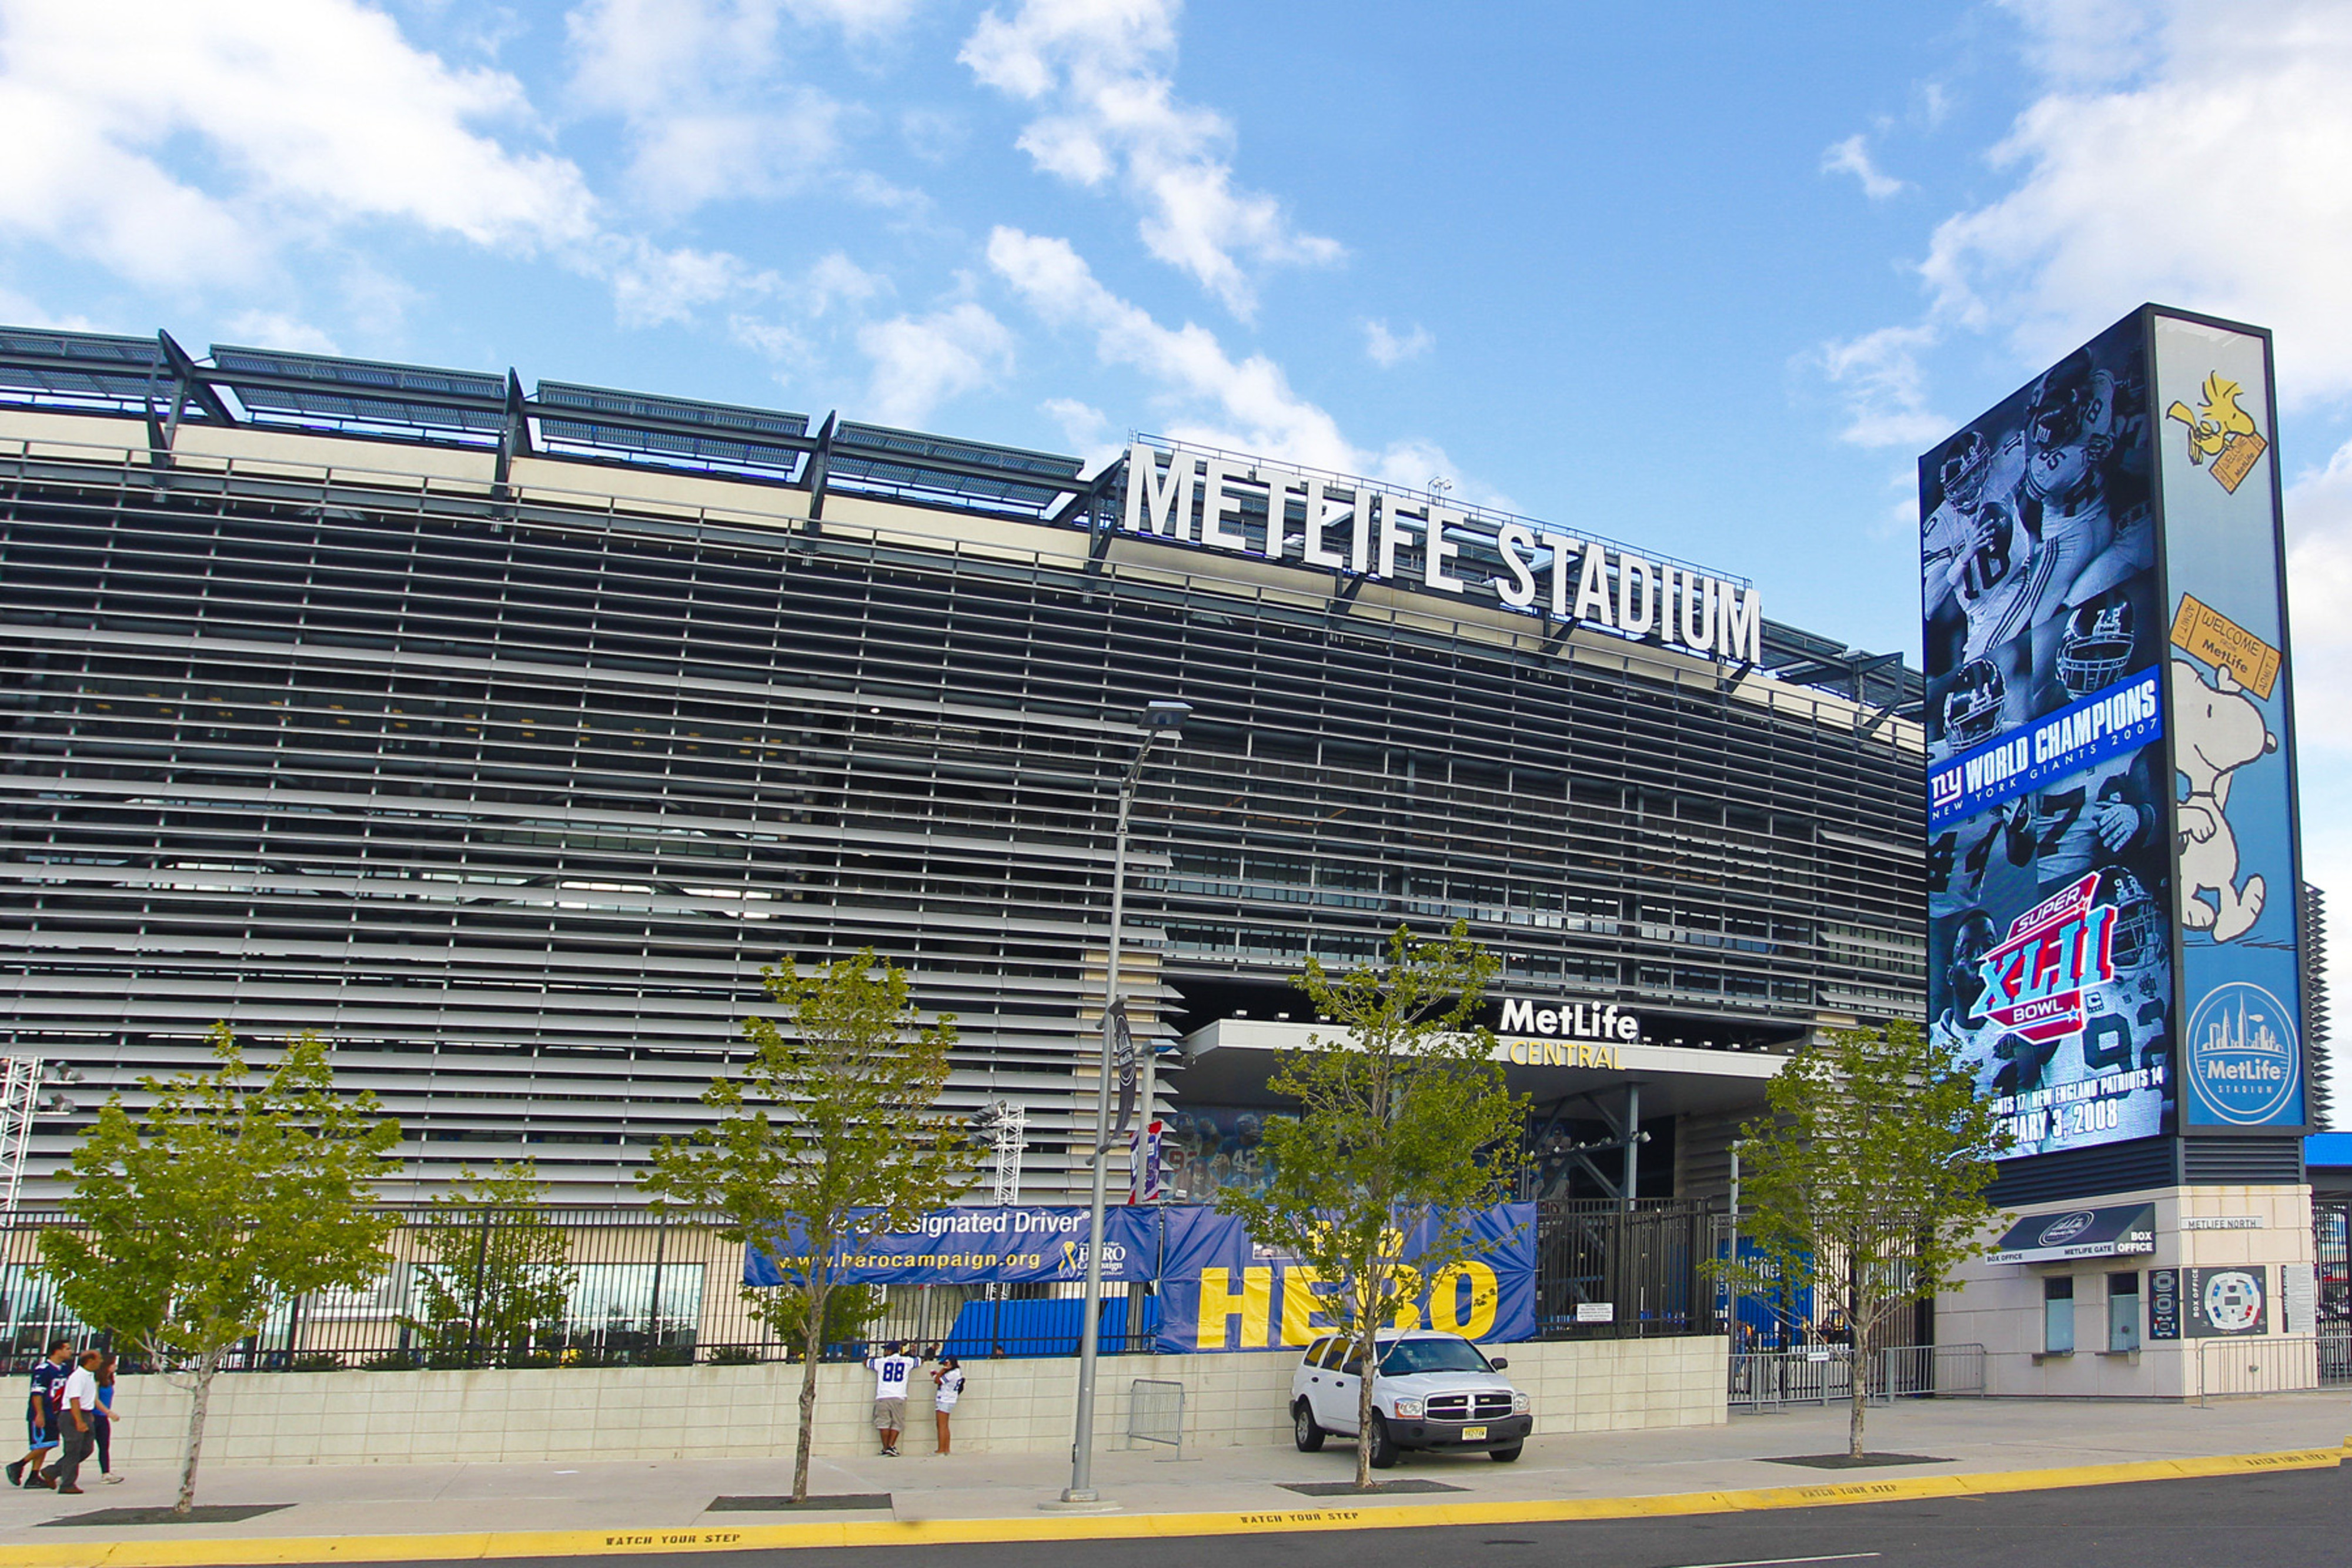 Sep 5, 2012; East Rutherford, NJ, USA;  A general view of MetLife Stadium prior to the NFL season opening game between the New York Giants and the Dallas Cowboys. Mandatory Credit: Jim O'Connor-US PRESSWIRE